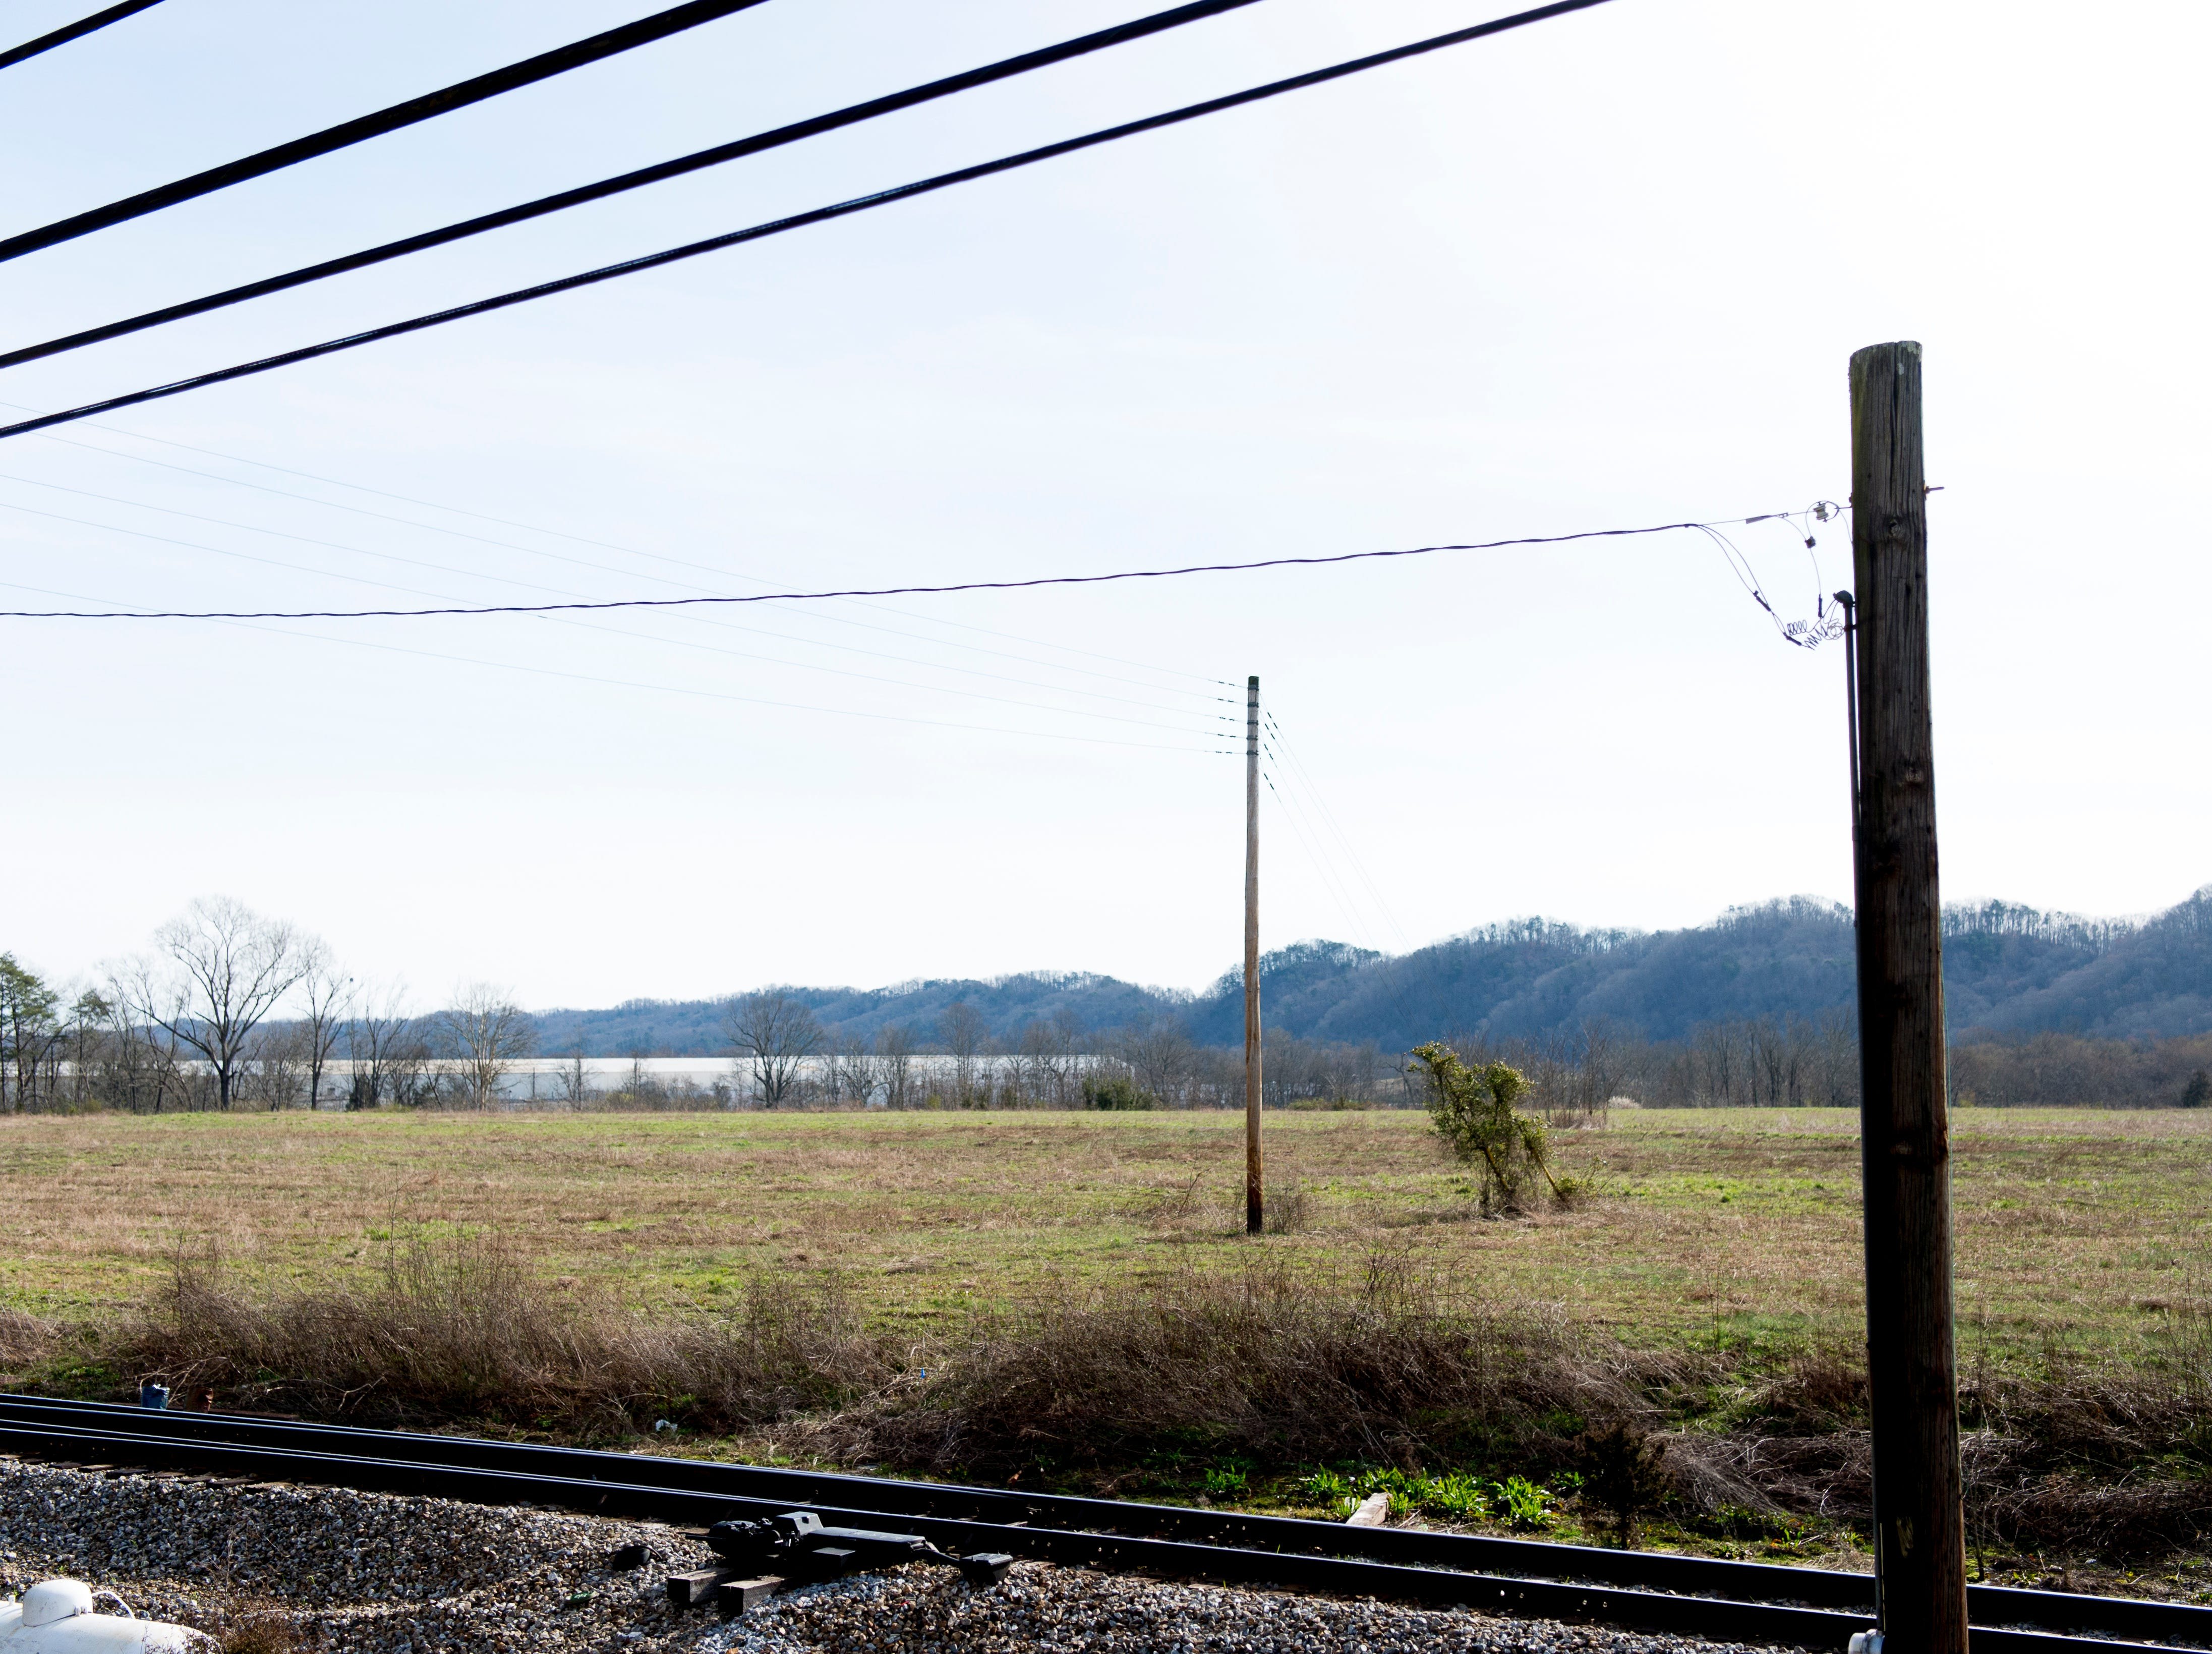 This is the site of the future Aspire Park in Clinton, Tenn. The Hollingsworth Foundation is looking to redevelop nearly 450 acres of land off Yarnell Road into a recreational park.